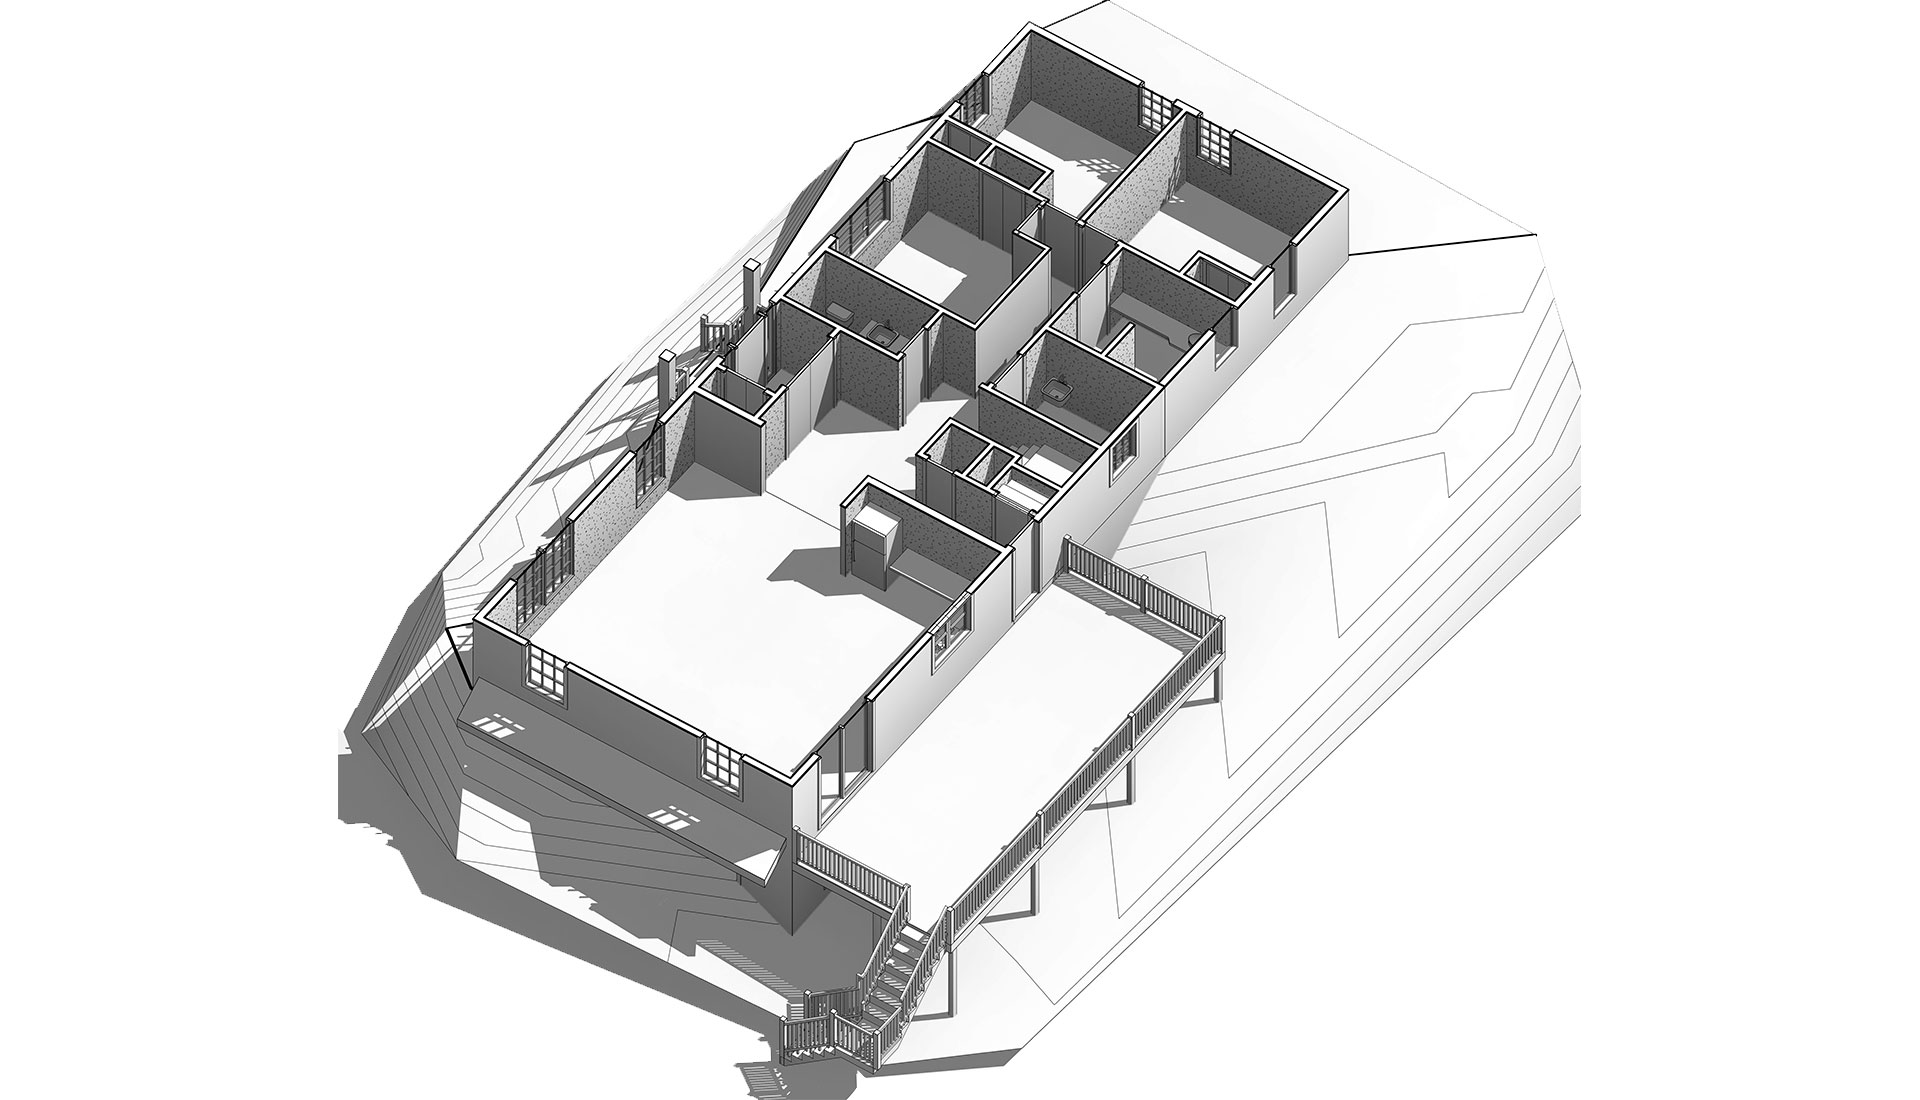 Sectional-View_Revit-Model-of-Home_Residential-Project-by-United-BIM